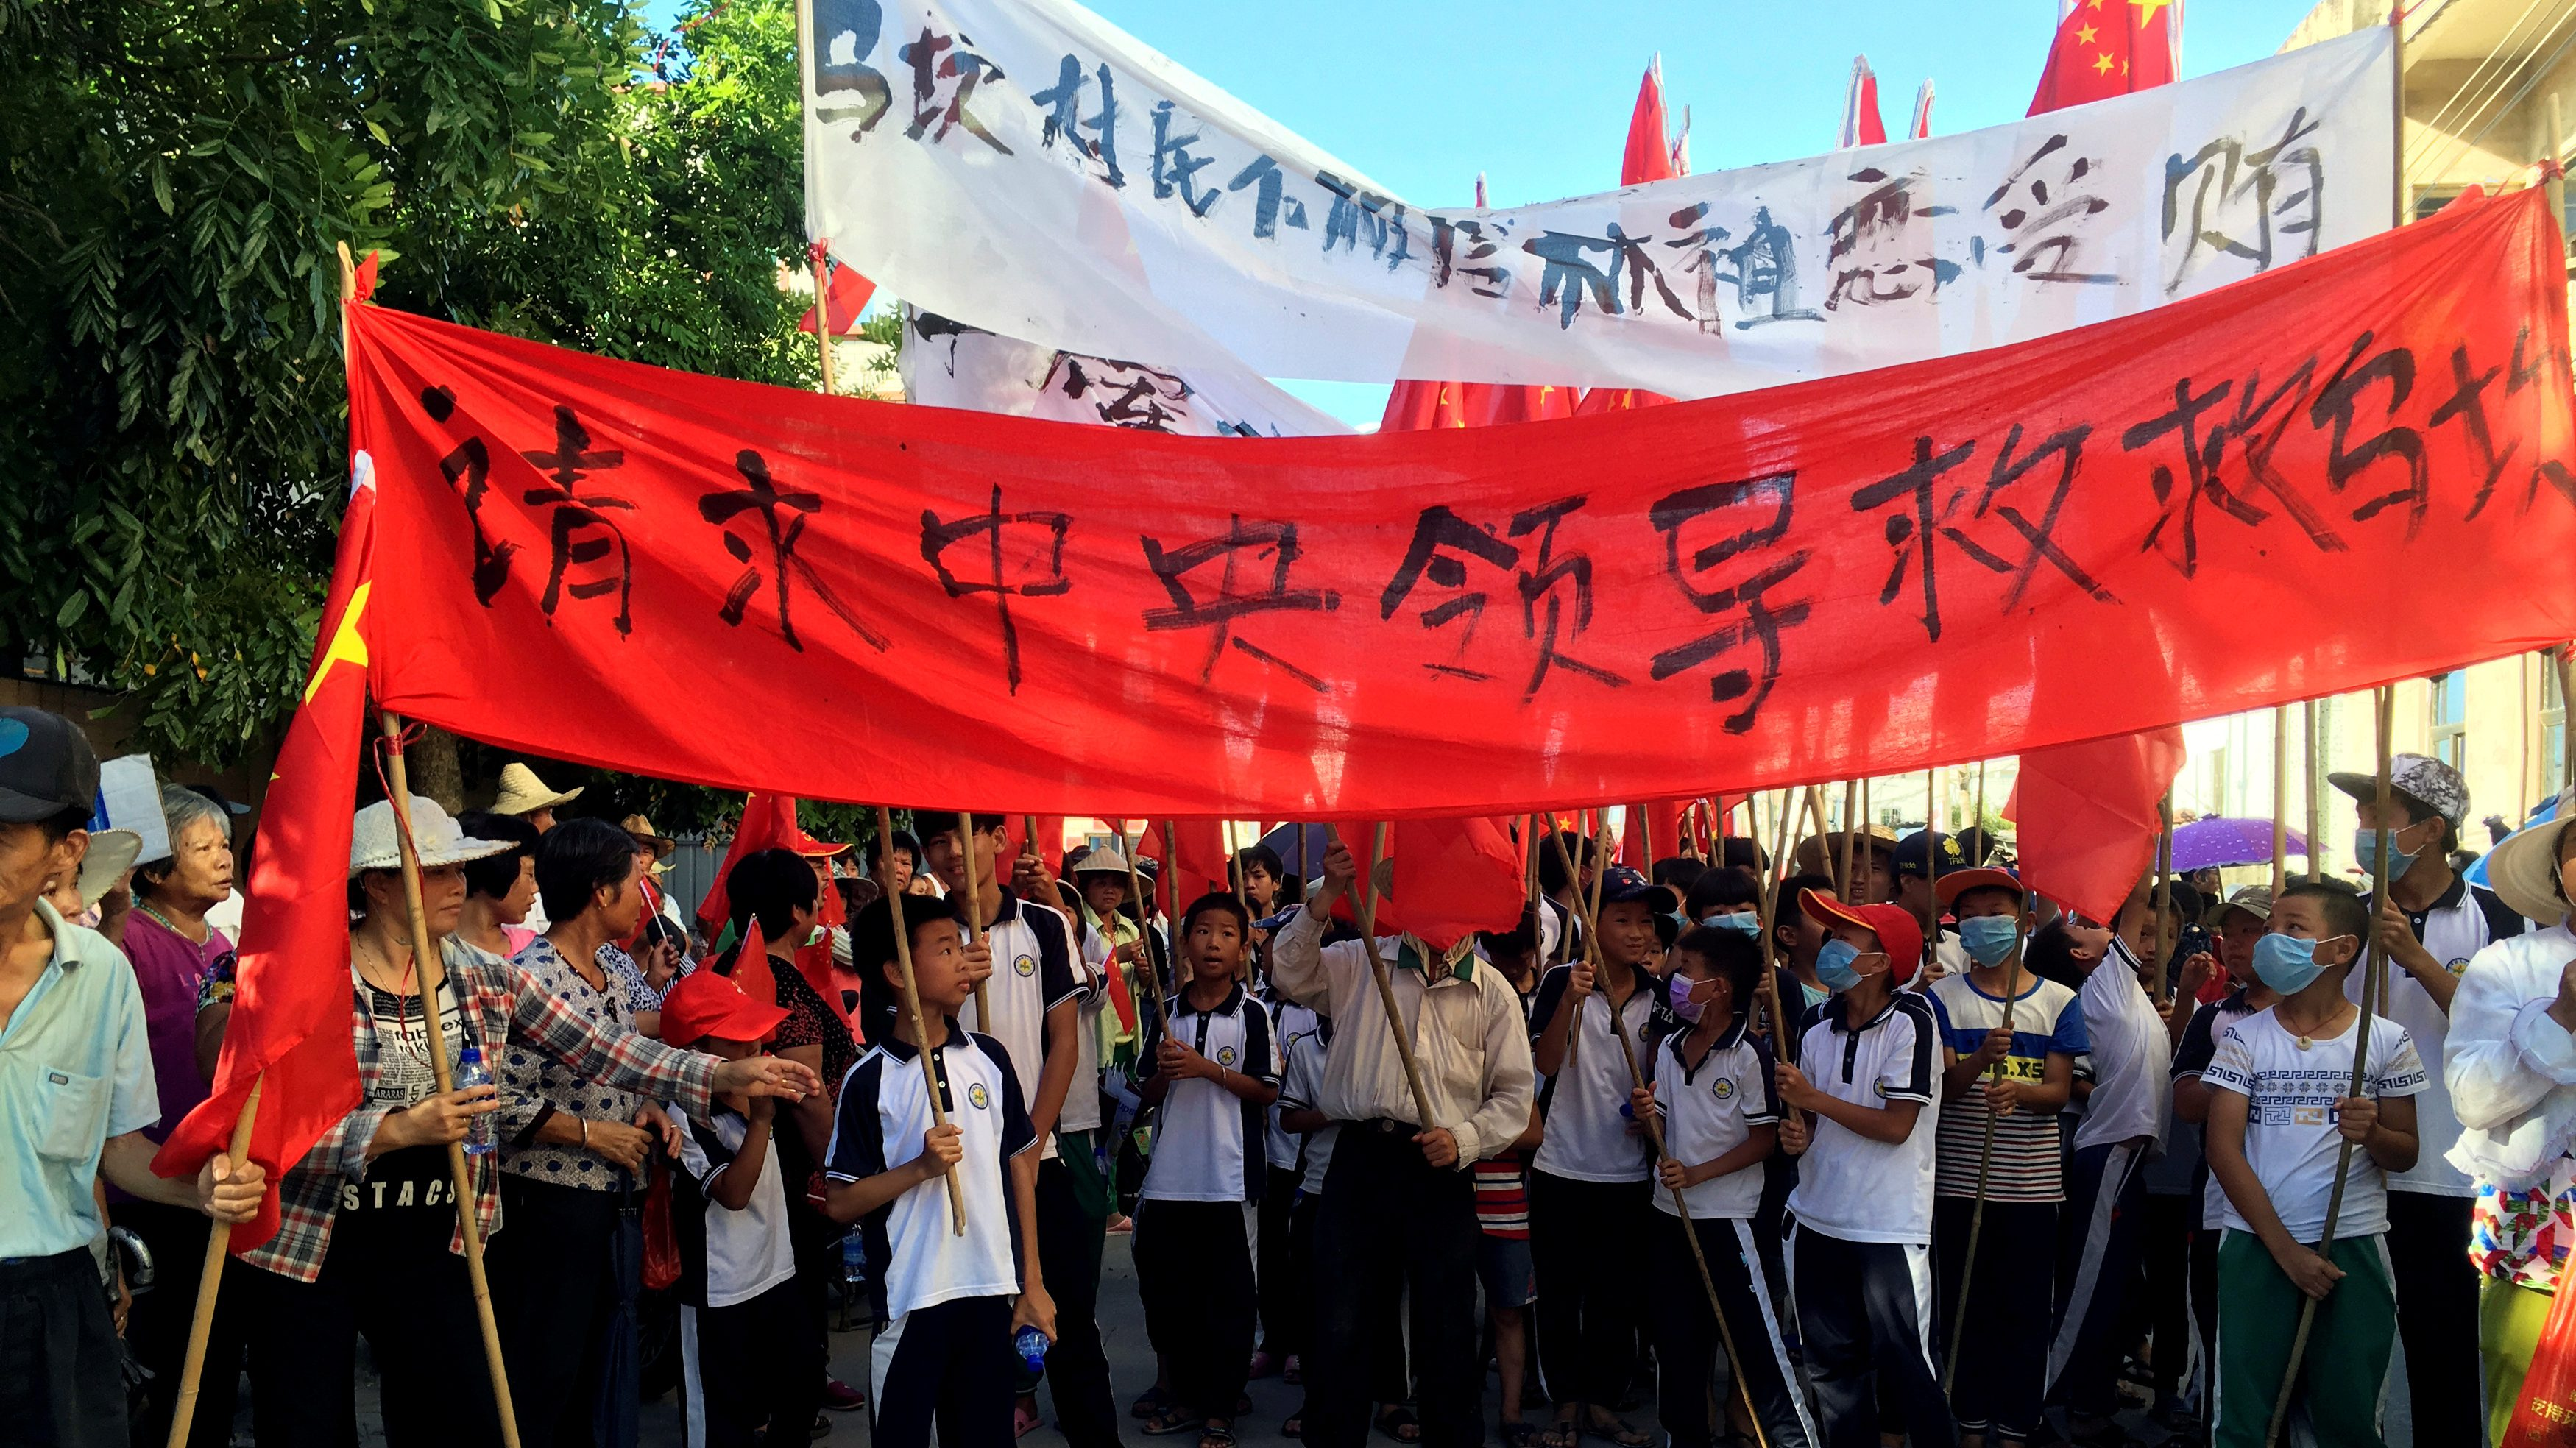 """Villagers carry banners which read """"Plead the central government to help Wukan"""" (in red) and """"Wukan villagers don't believe Lin Zuluan took bribes"""" during a protest in Wukan, China's Guangdong province June 22, 2016."""